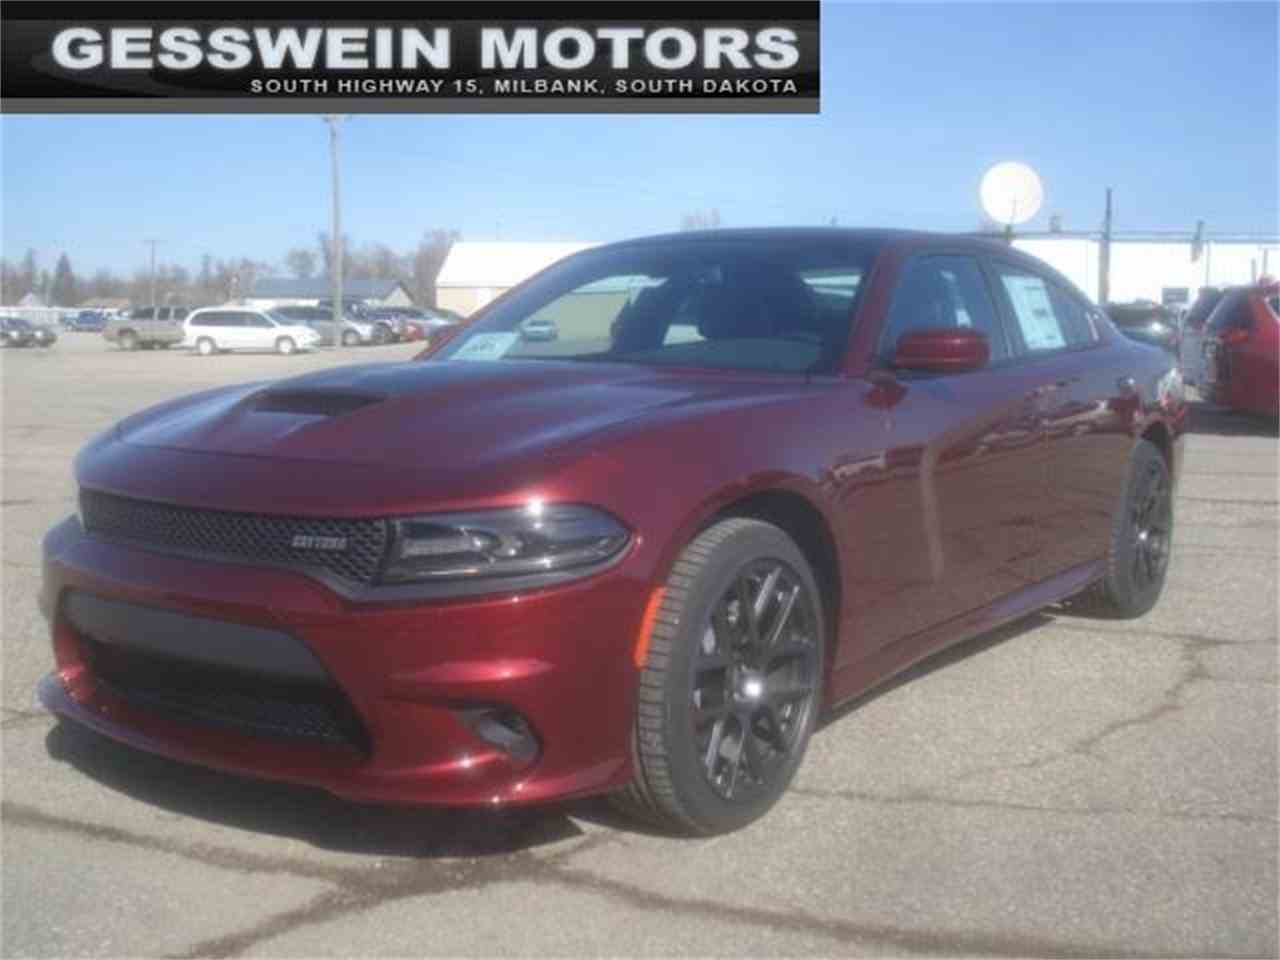 2017 dodge charger r t daytona edition for sale cc 963342. Black Bedroom Furniture Sets. Home Design Ideas